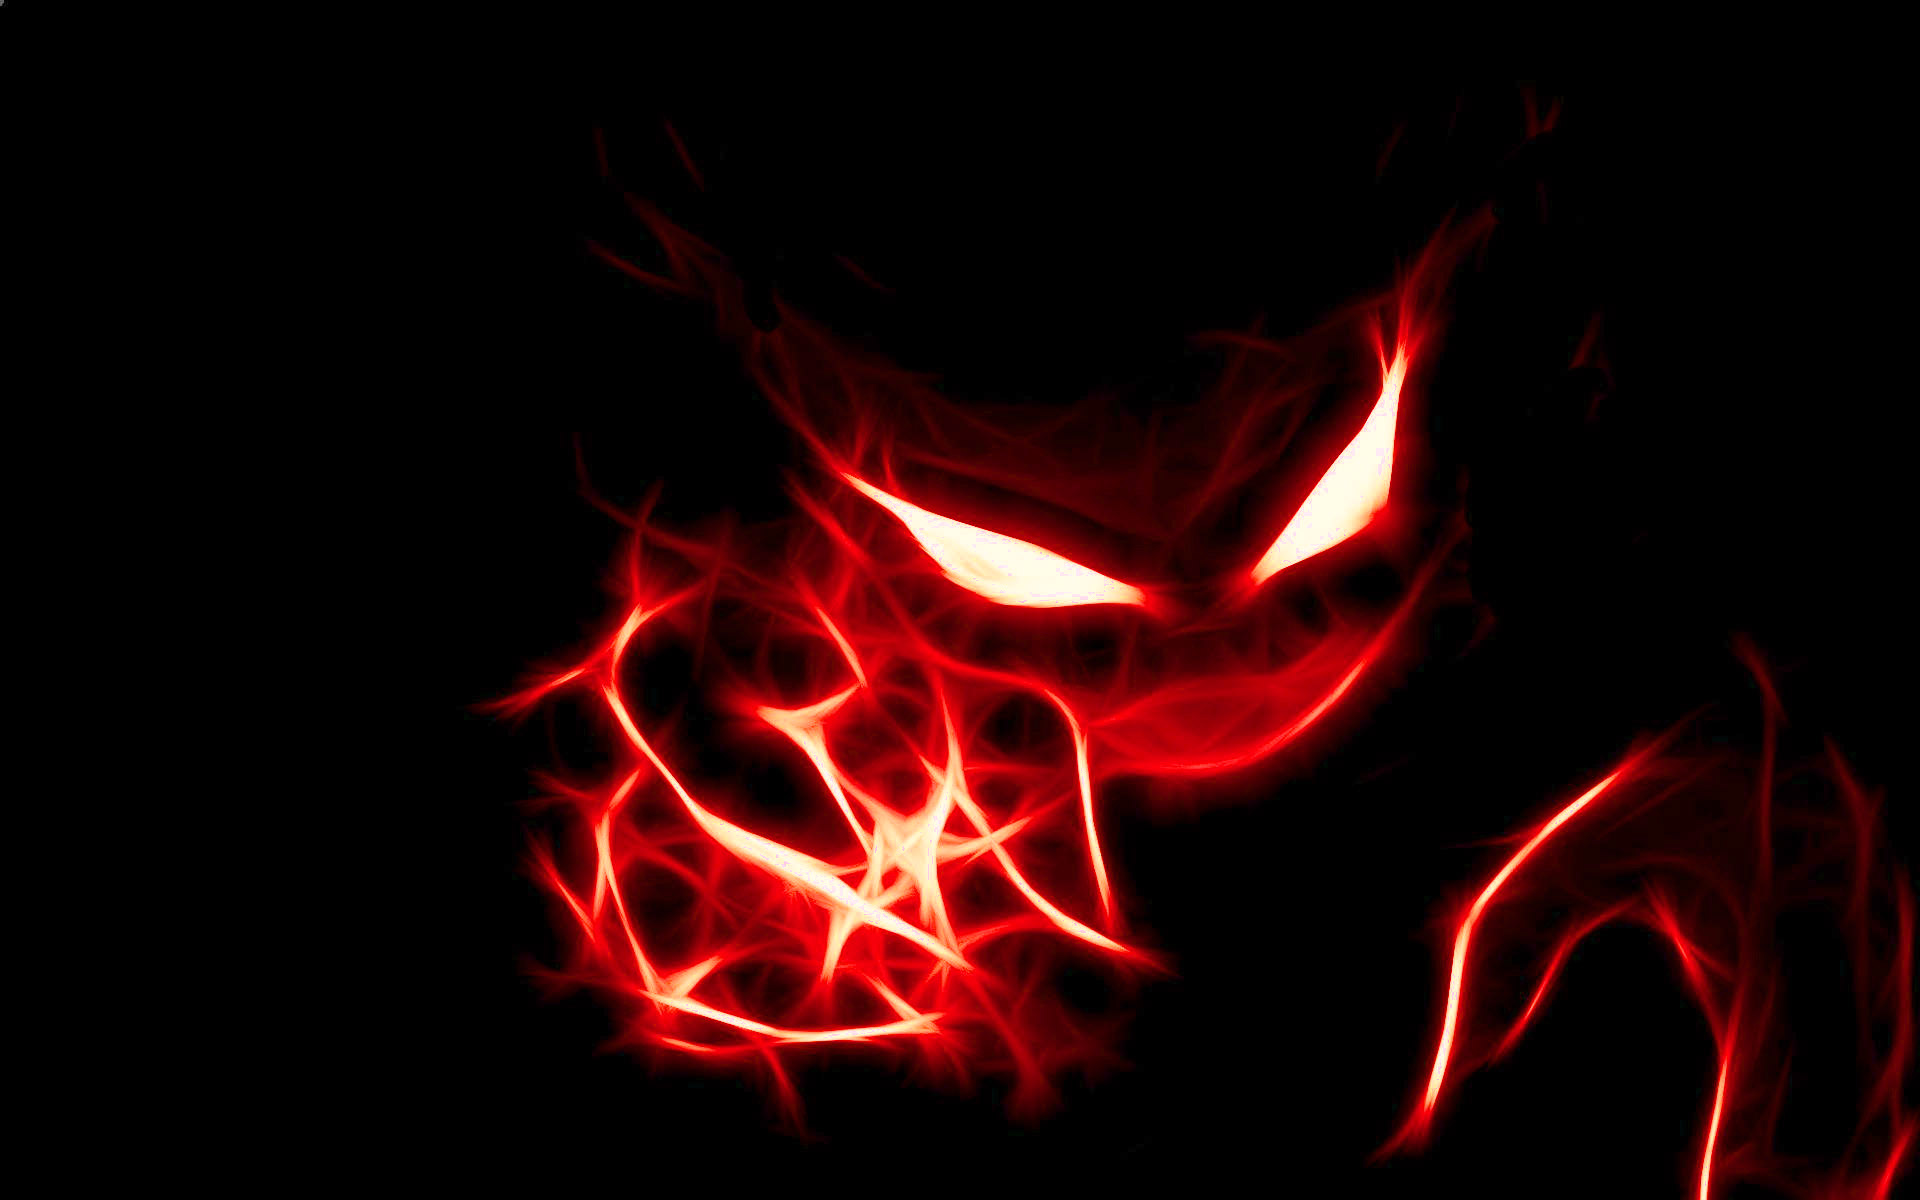 Awesome Red Haunter Wallpaper Pokemon Wallpaper Monster 177 Backgrounds